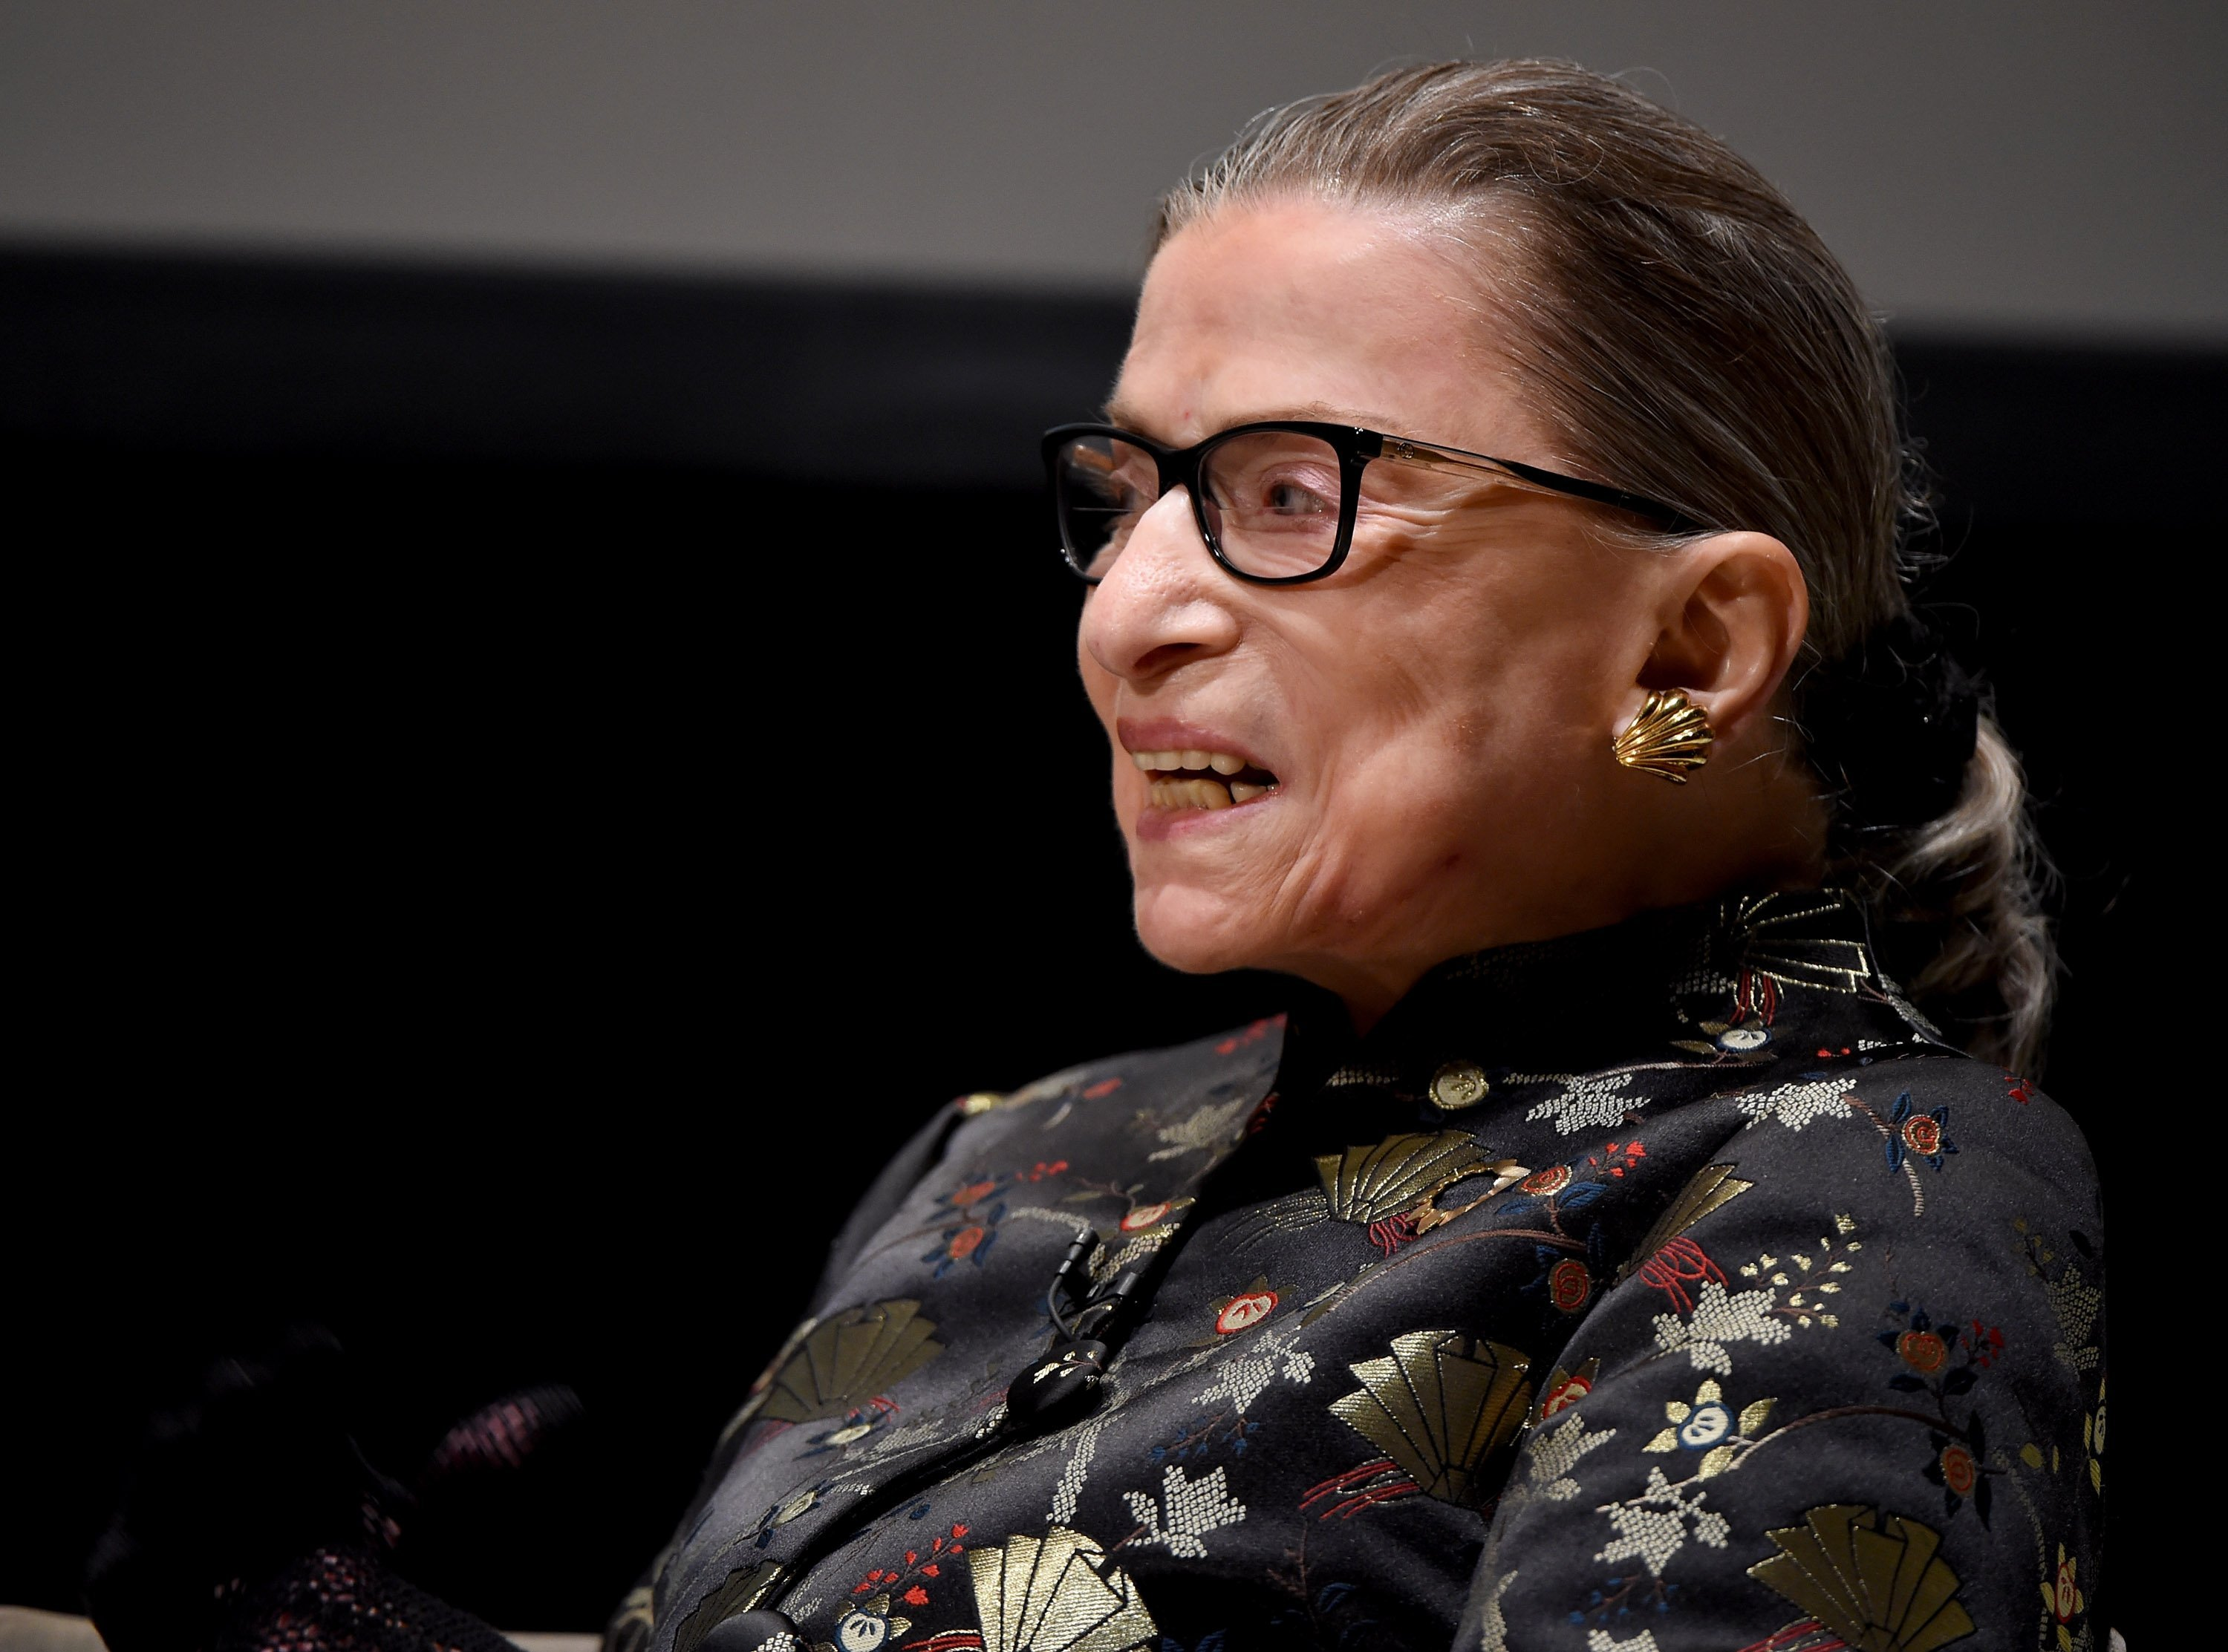 Supreme Court Justice Ruth Bader Ginsburg presents onstage at An Historic Evening with Supreme Court Justice Ruth Bader Ginsburg at the Temple Emanu-El Skirball Center on September 21, 2016   Photo: GettyImages